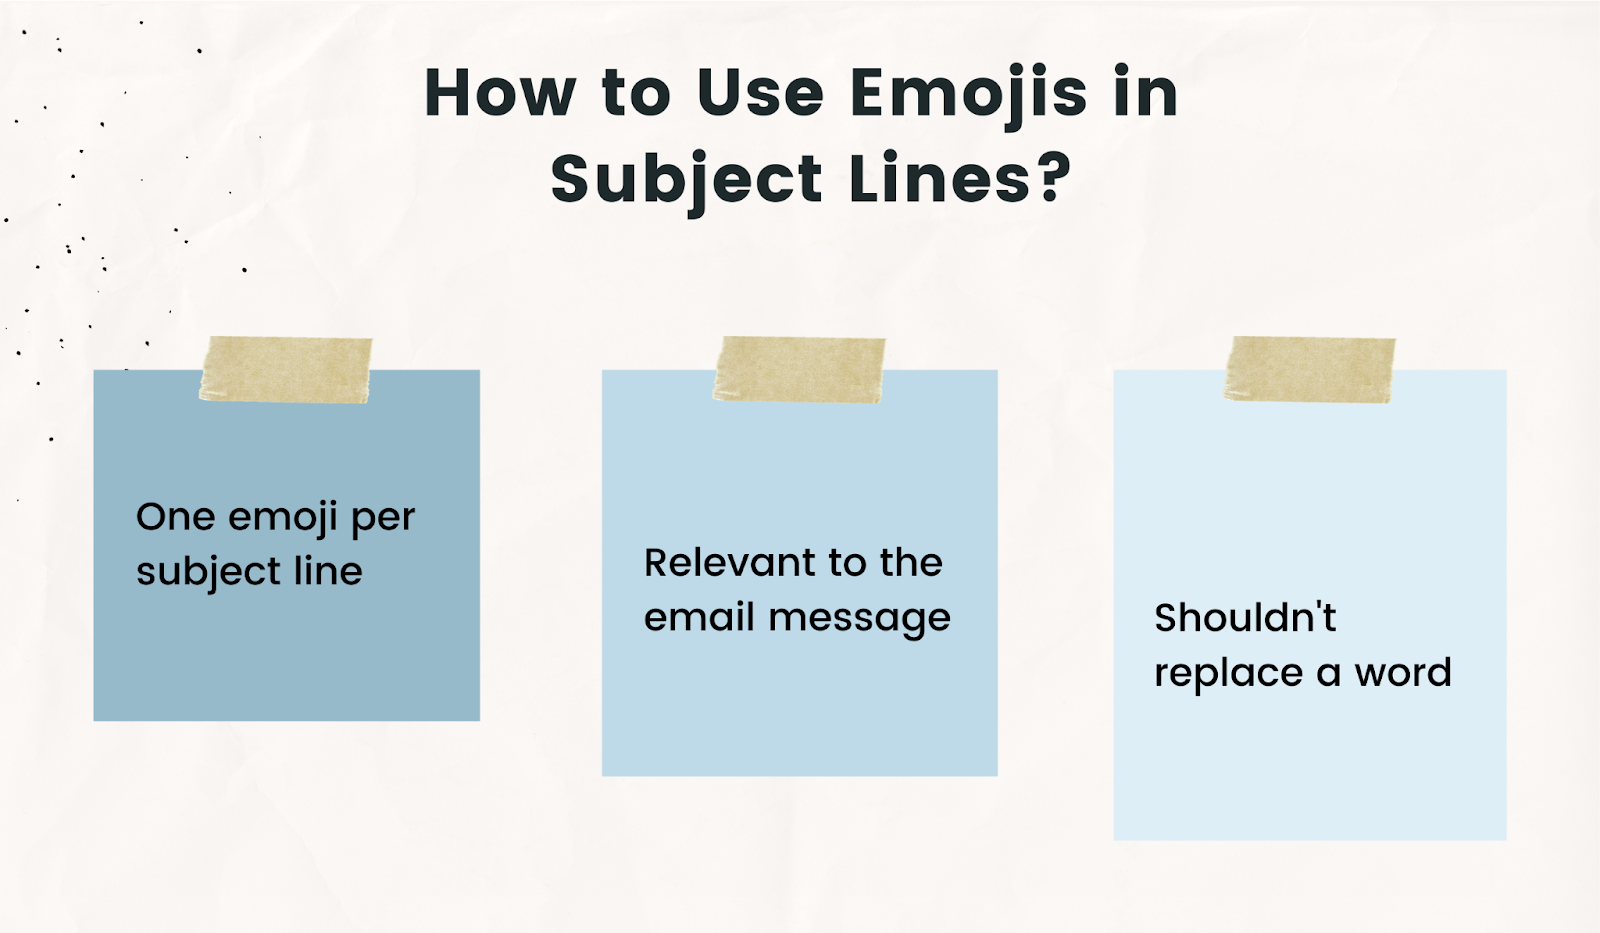 3 tips for using emojis in subject lines